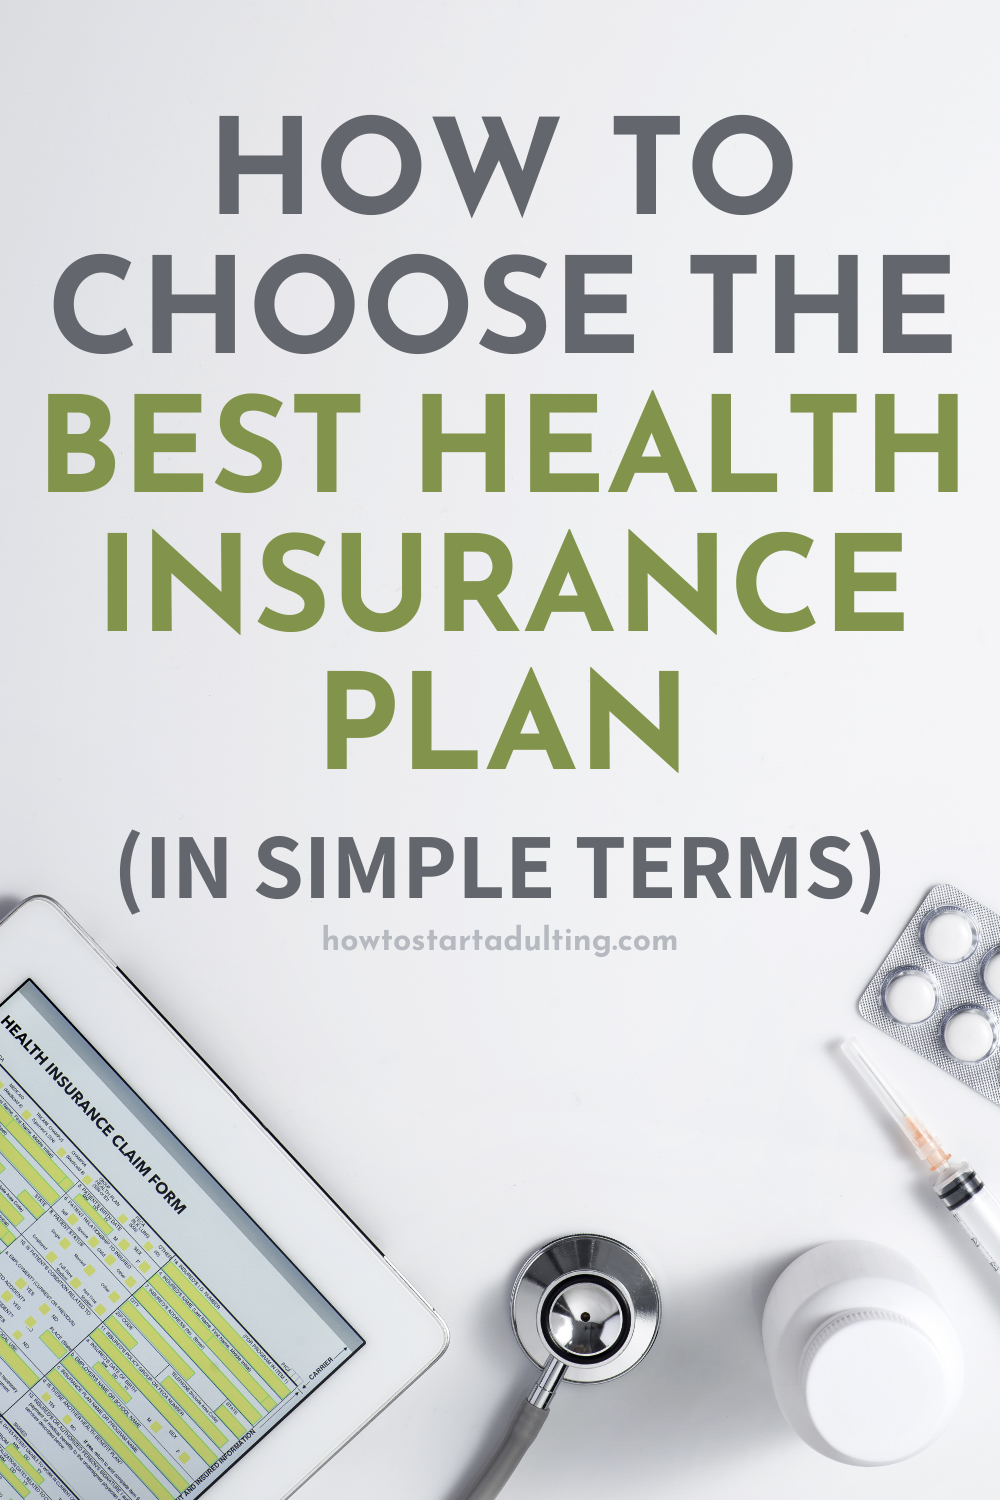 How To Choose The Best Health Insurance Plan (In Simple Terms), Comparing health care plans explained #healthcare #healthinsurance #insurance #adulting #newjob #benefits #healthcarebenefits